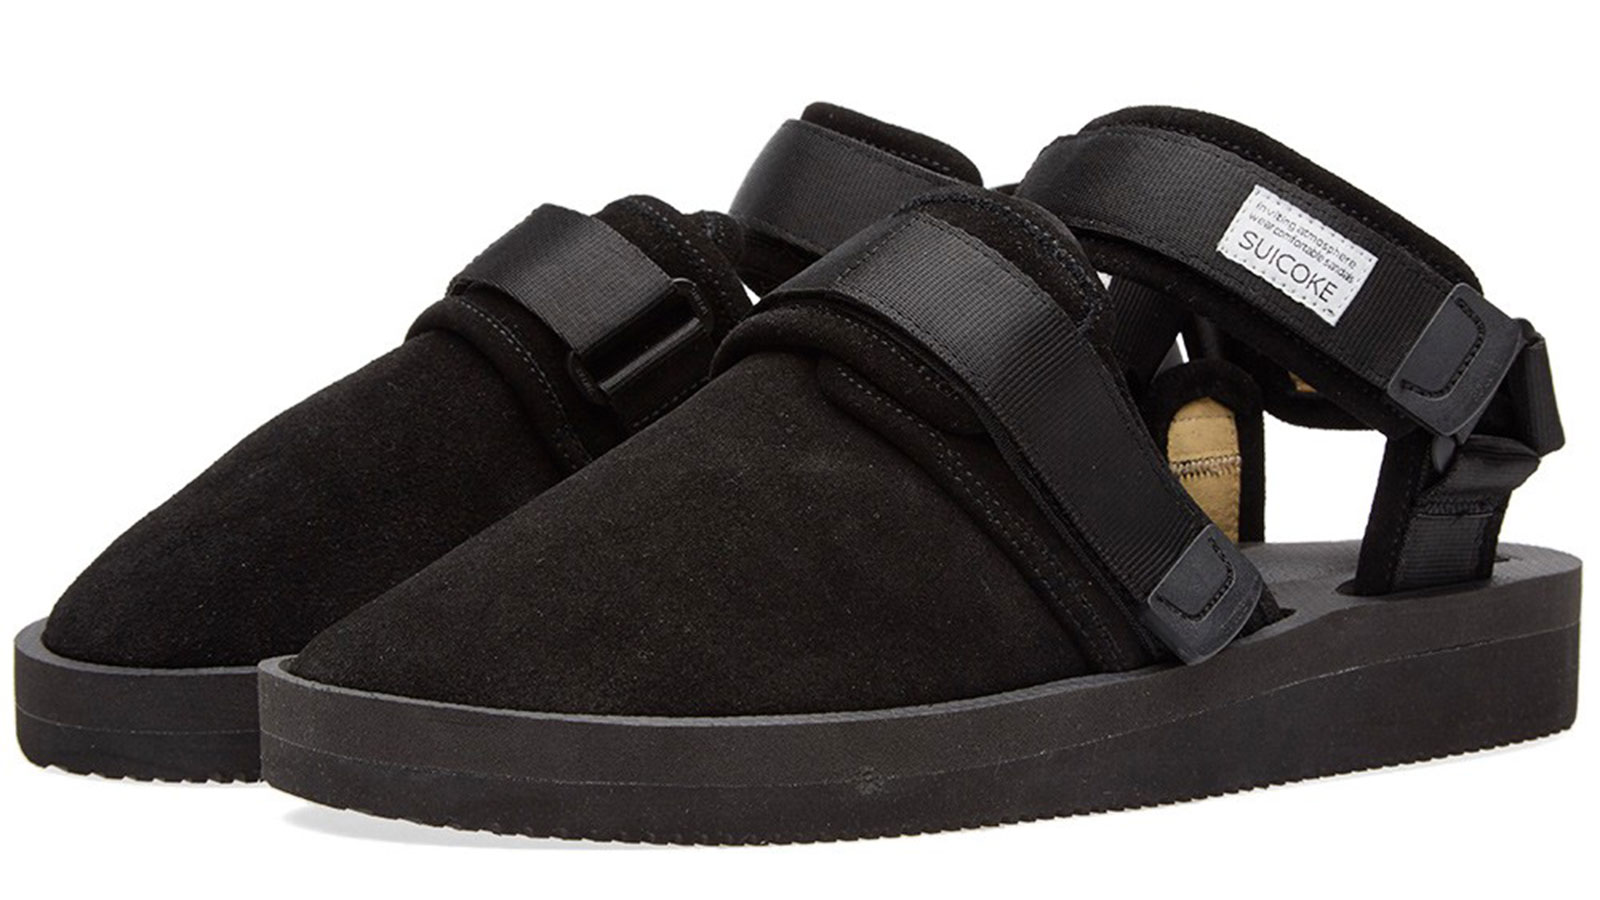 SUICOKE NOTS-VS best sandals for men